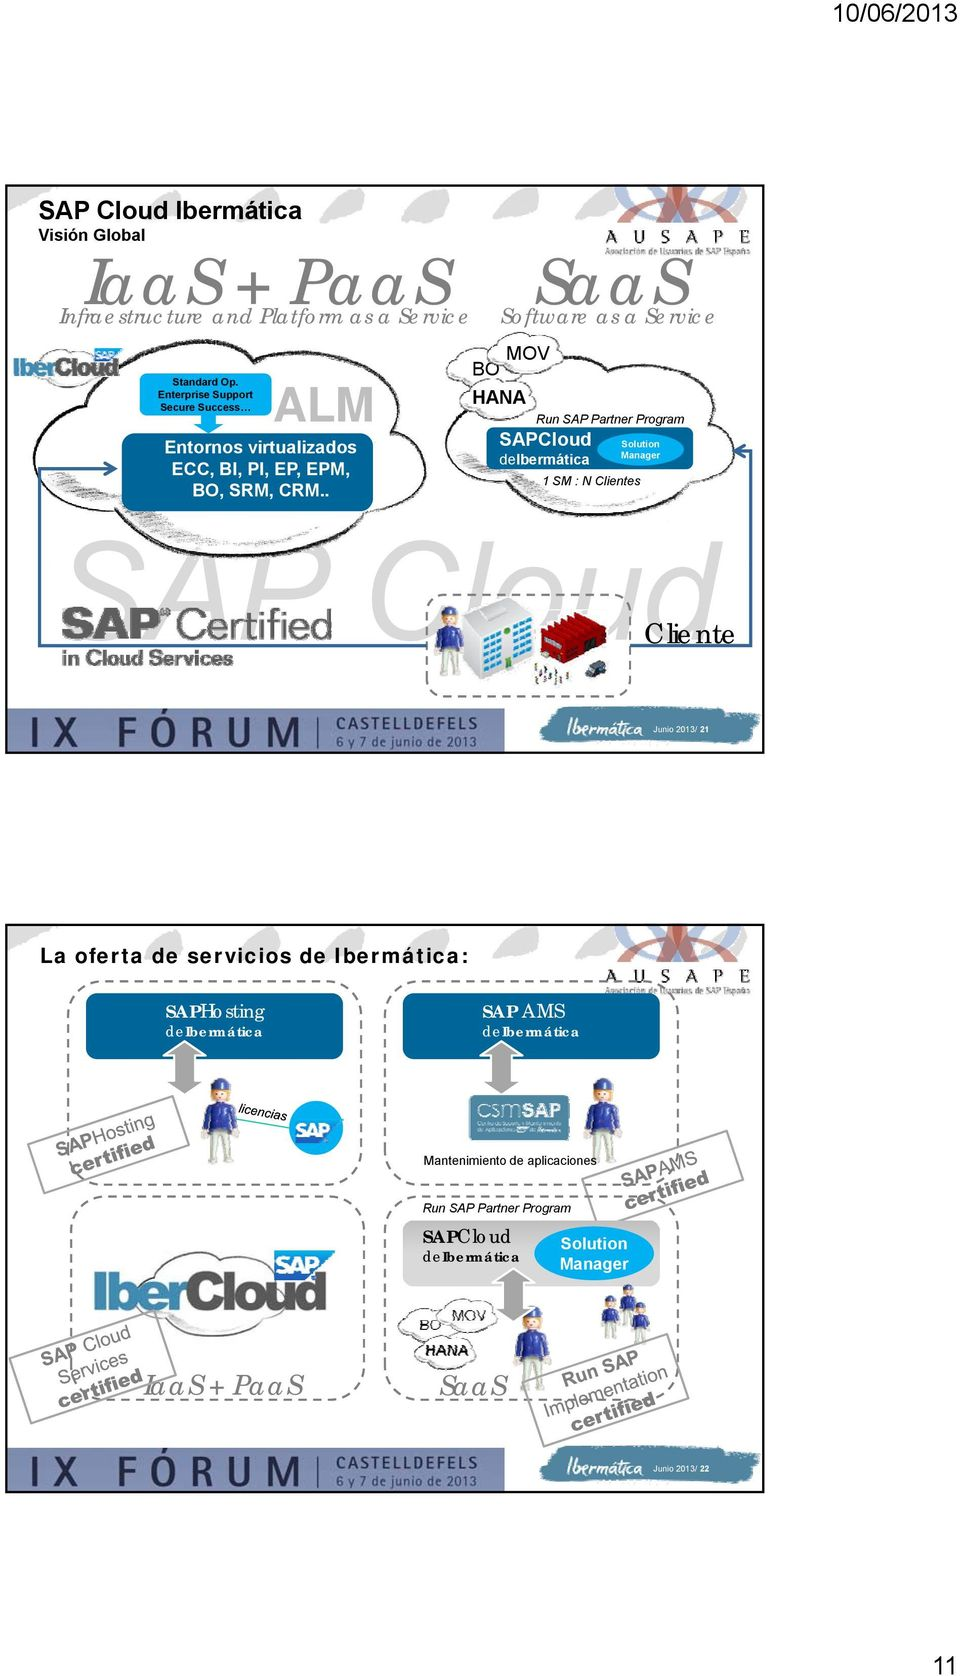 . SaaS Software as a Service BO MOV HANA Run SAP Partner Program SAPCloud deibermática 1 SM : N Clientes Solution Manager SAP Cl d